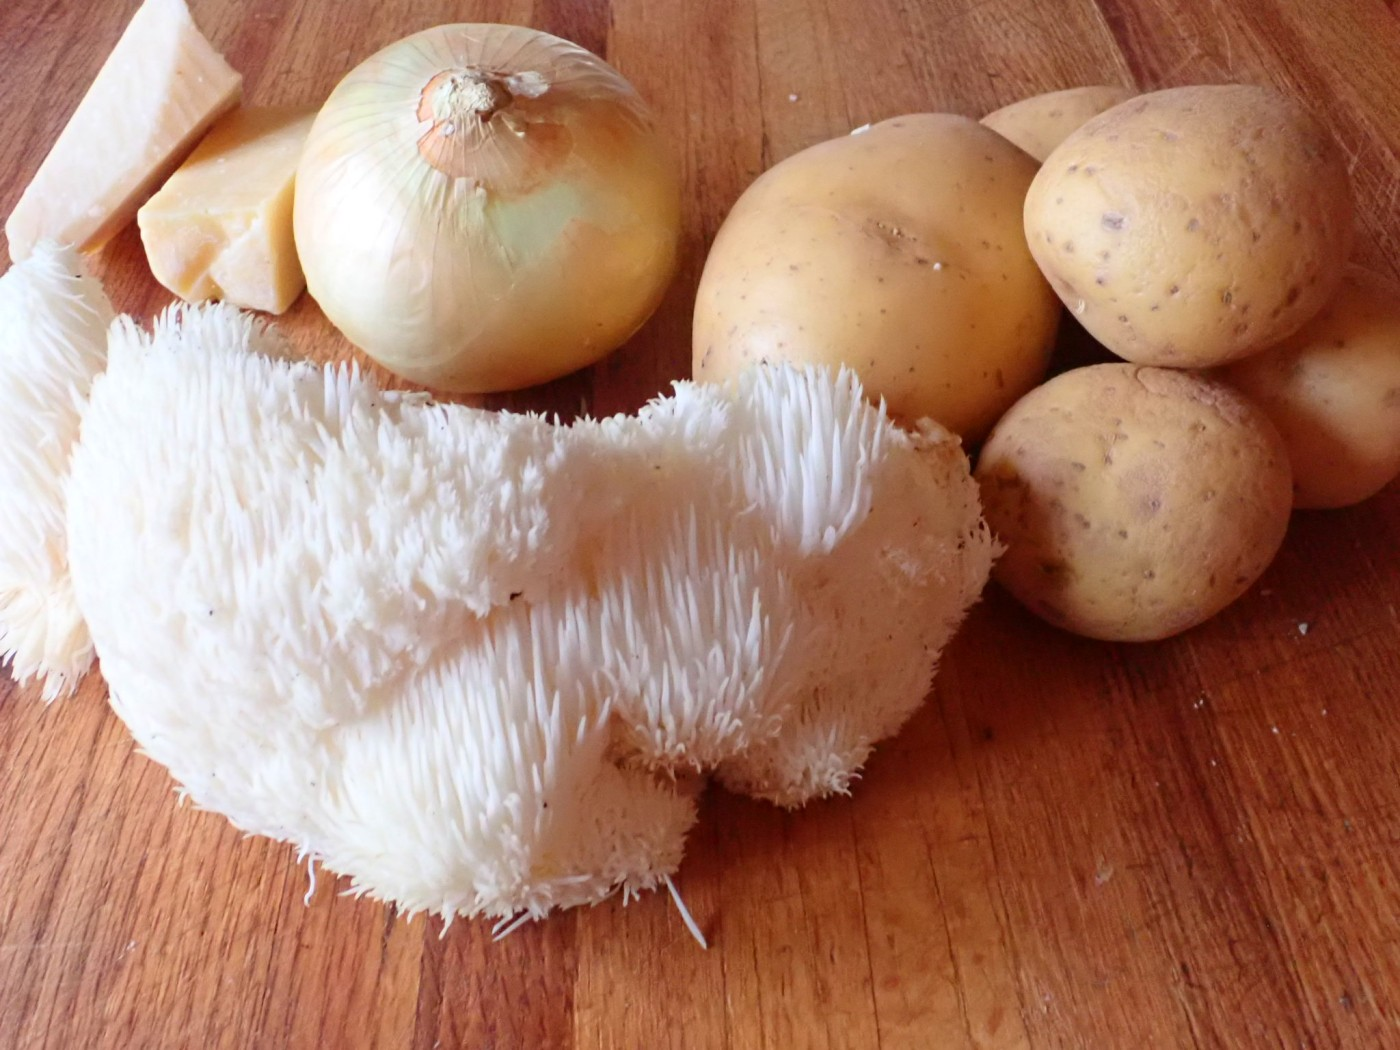 Hericium in kitchen